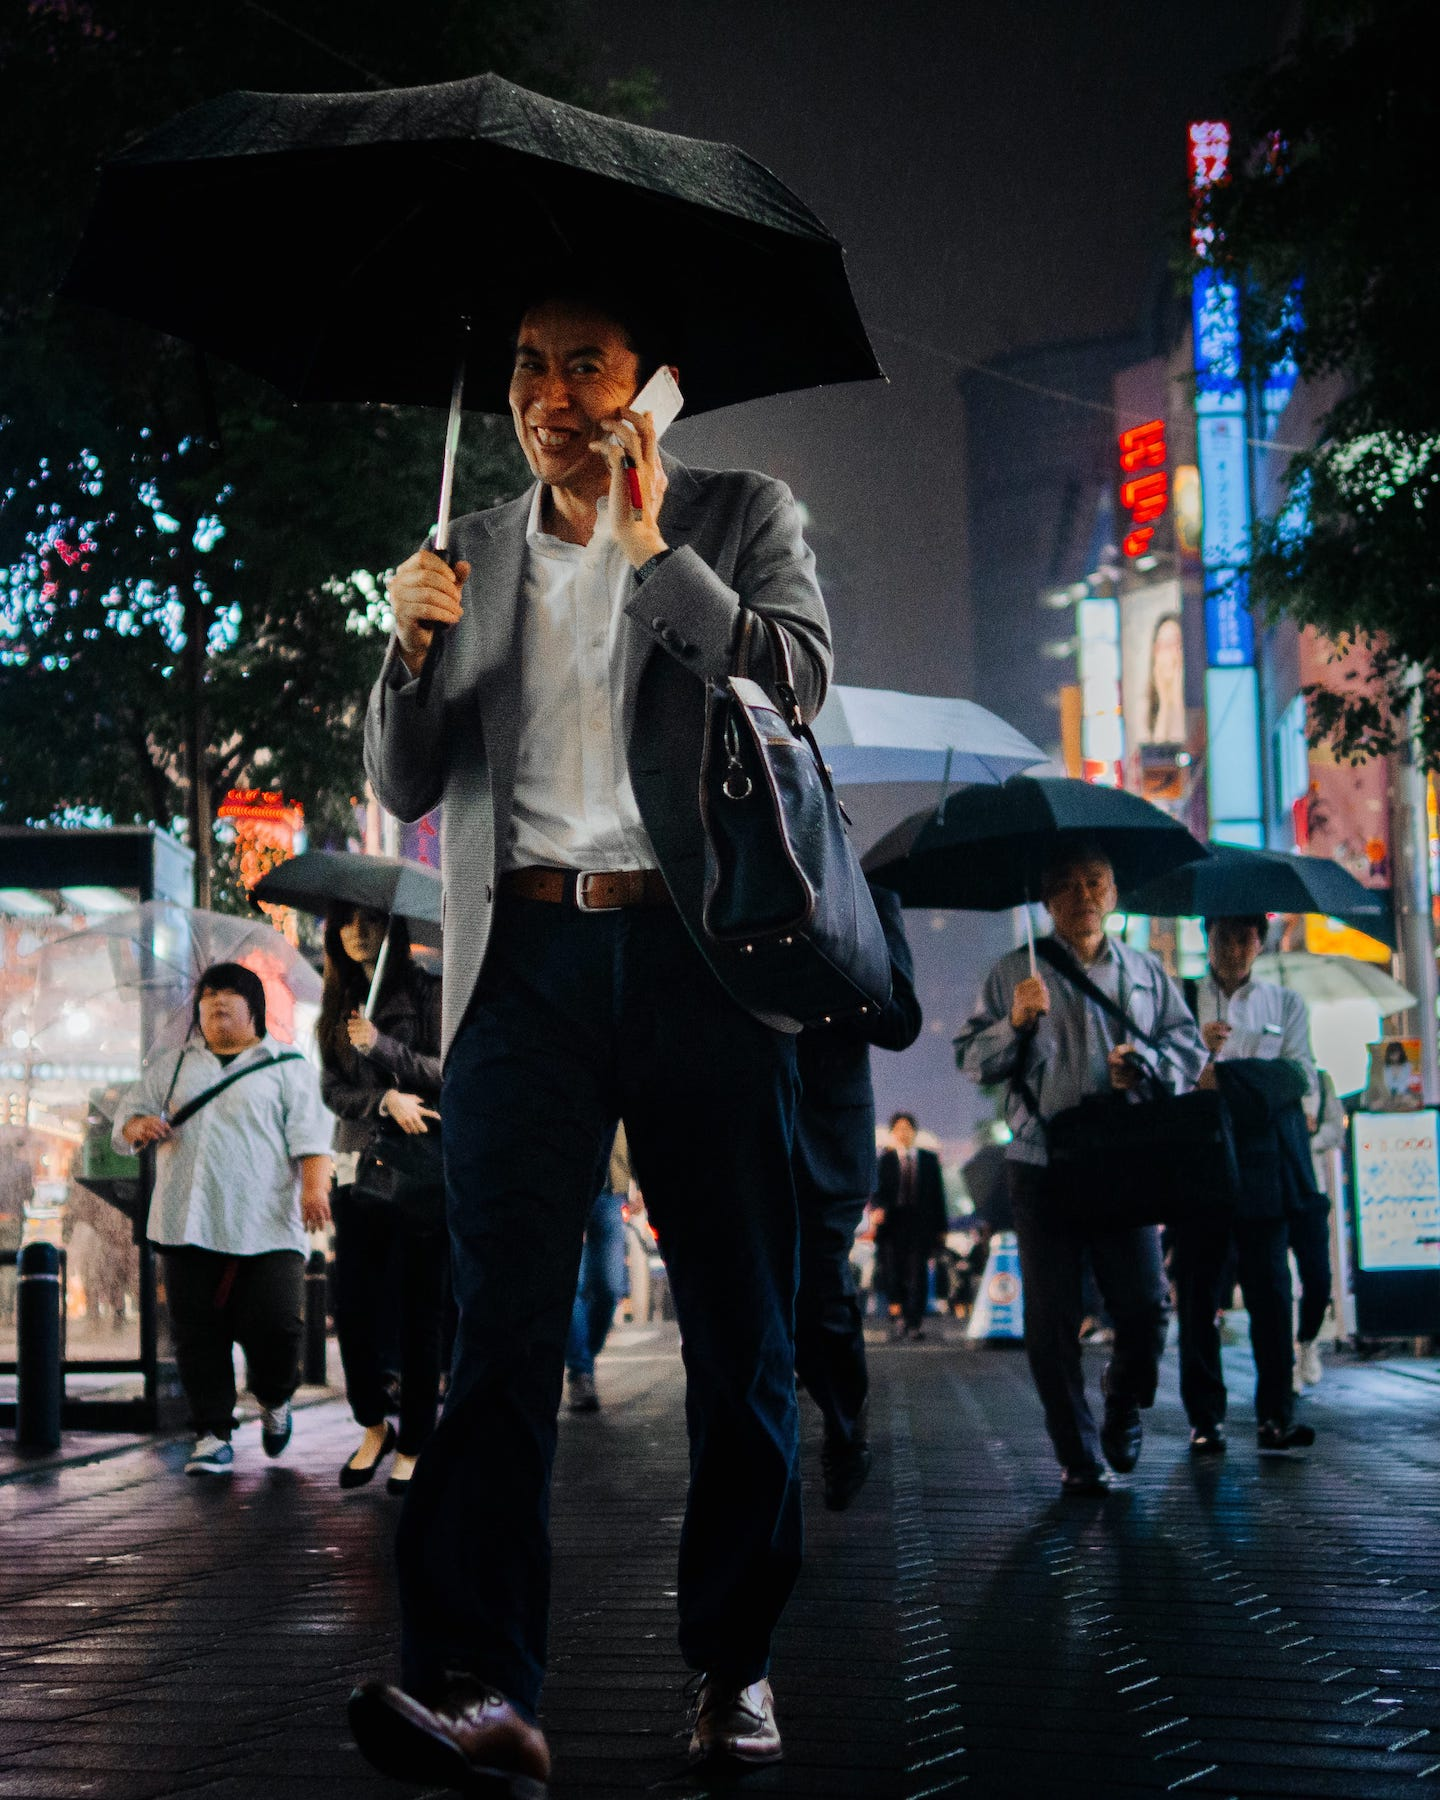 tokyo_nuit_anthony_marques_5